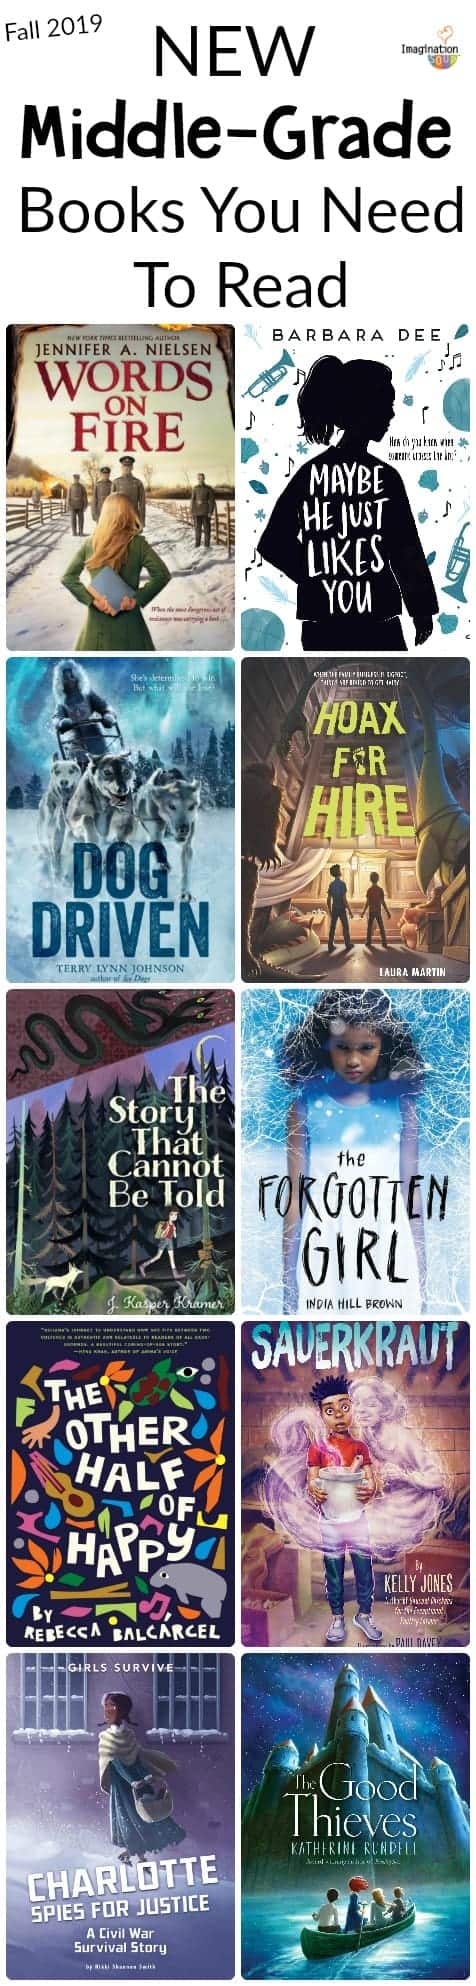 New Middle Grade Books You Should Know About